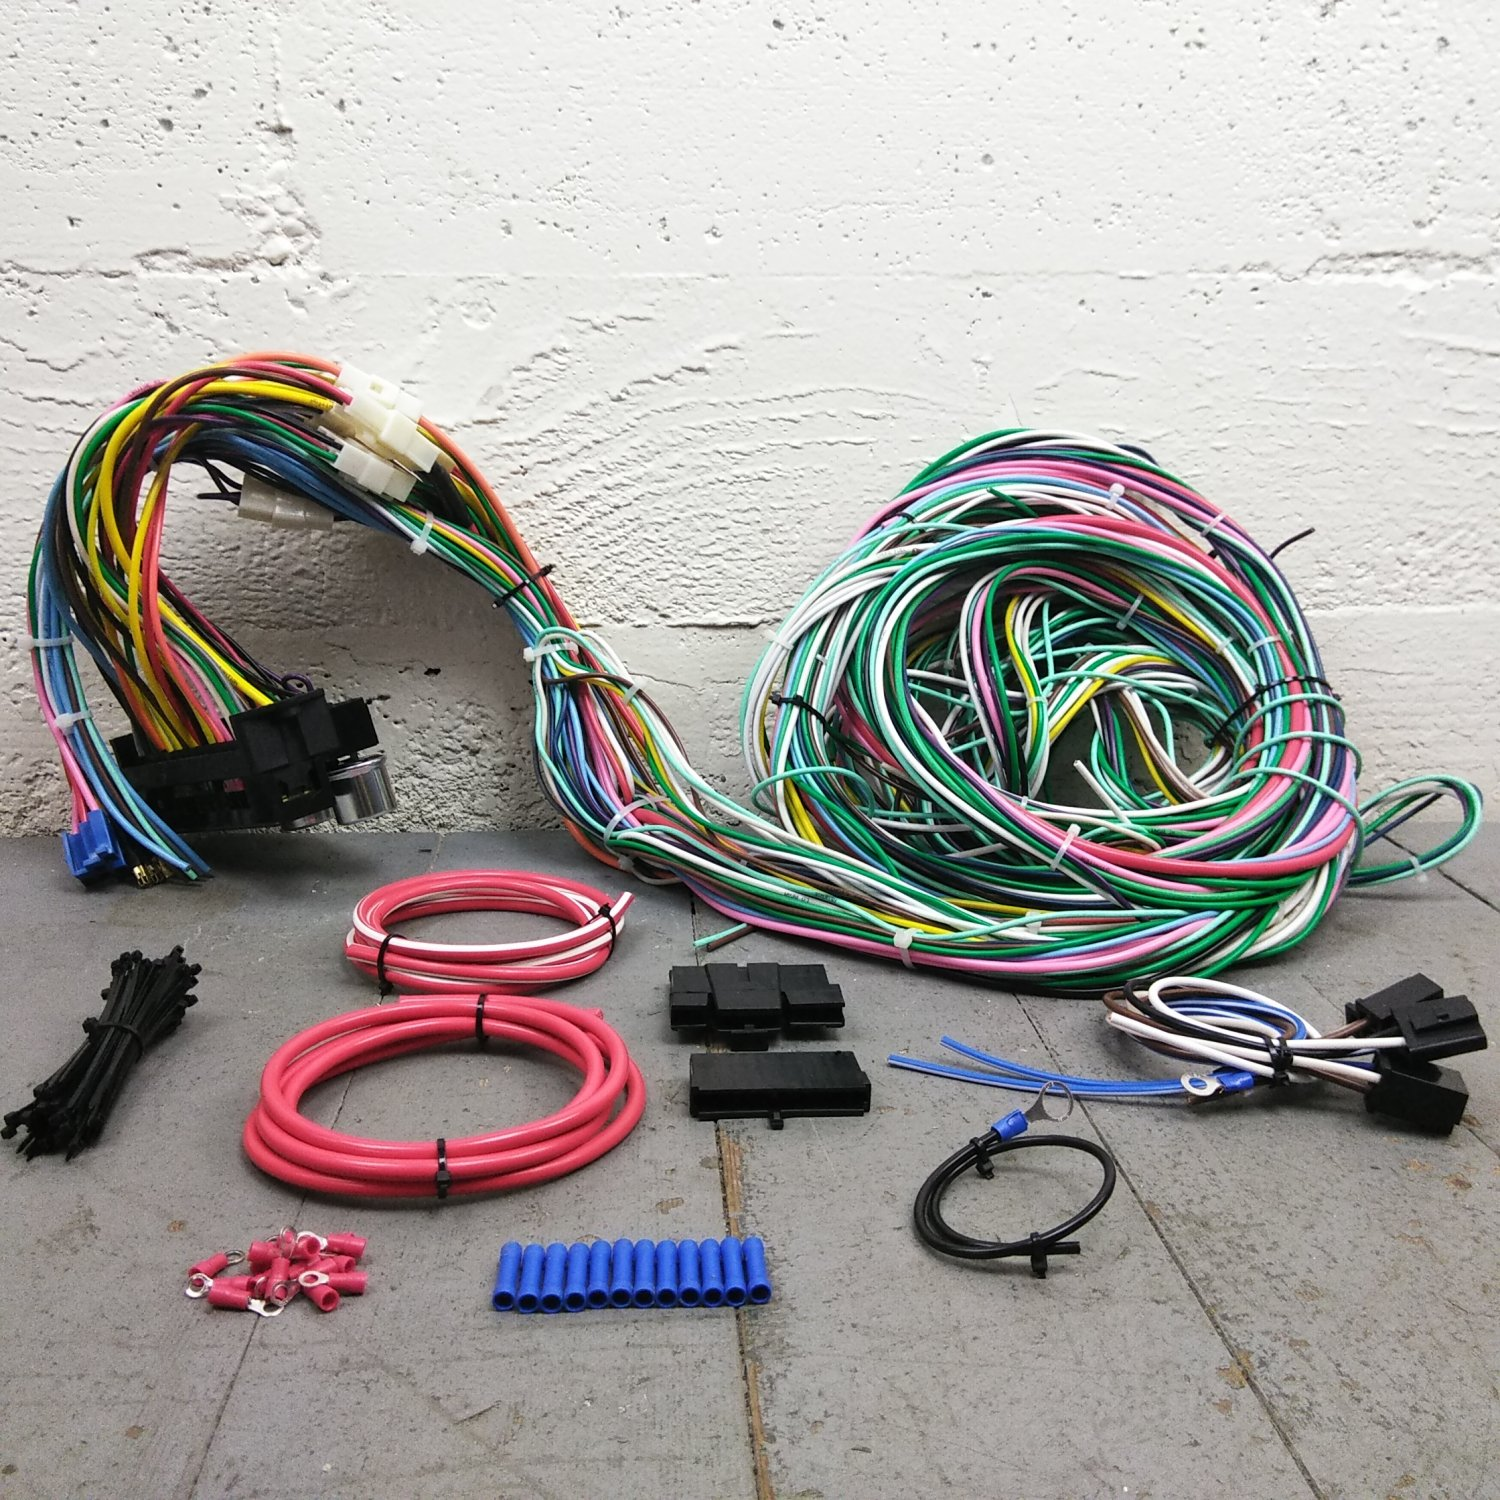 hight resolution of 1963 1974 dodge mopar wire harness upgrade kit fits painless new compact fuse bar product description c